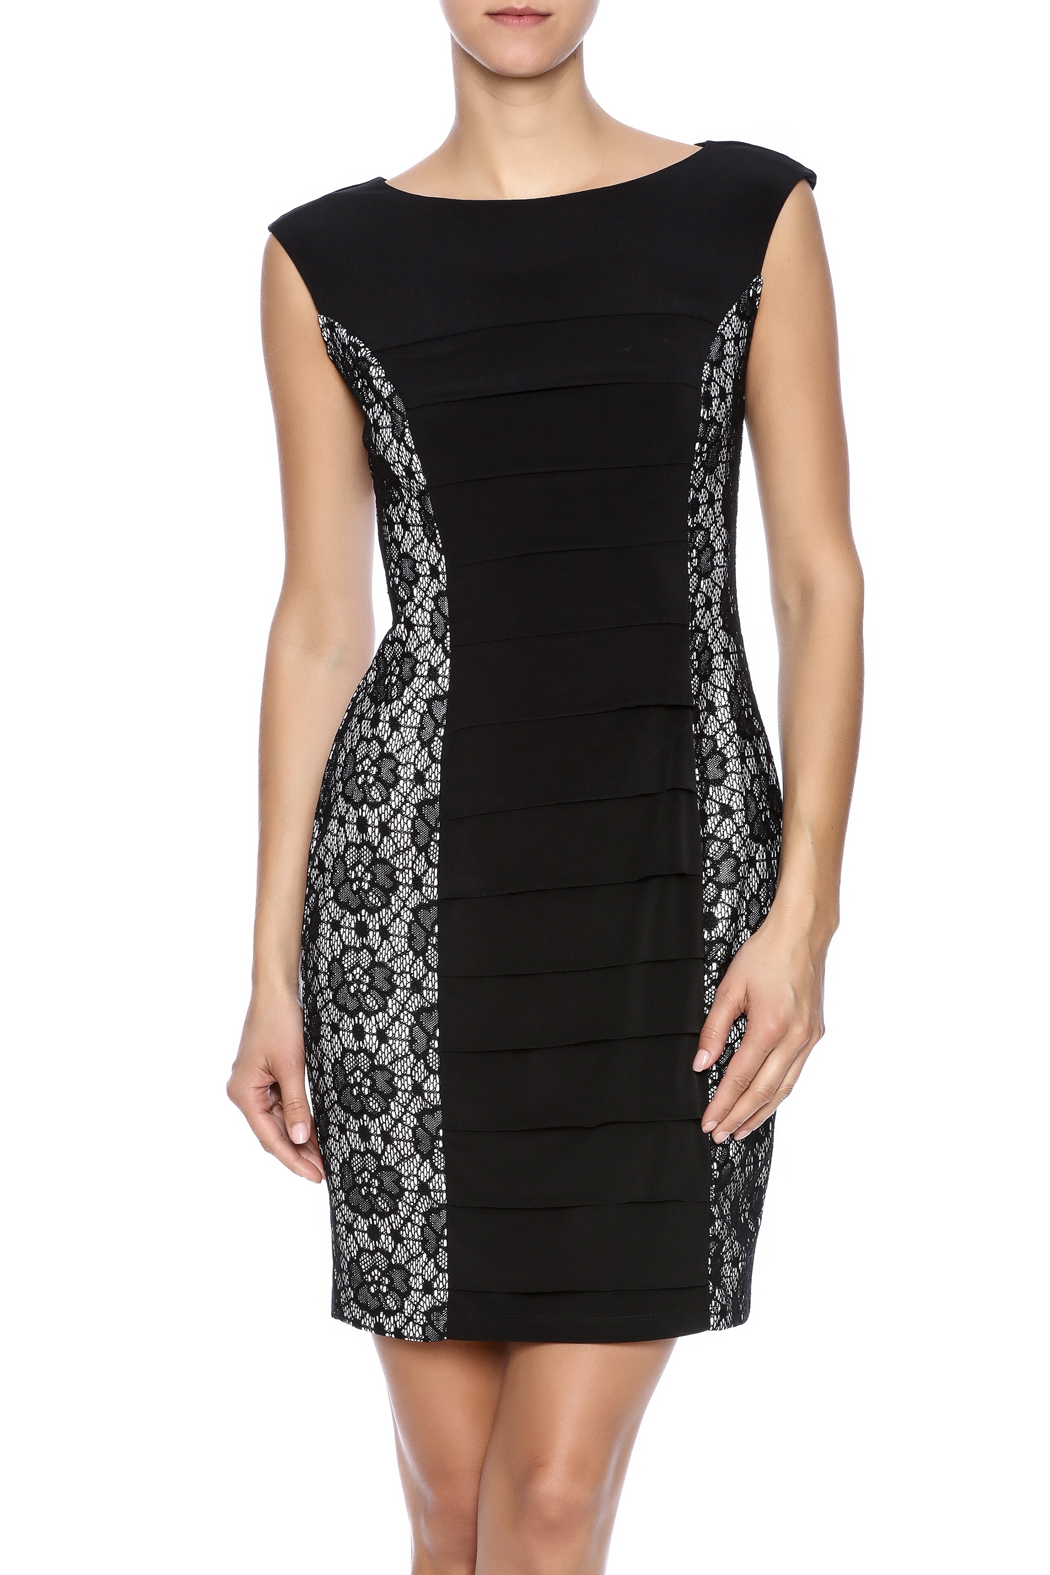 Enfocus Studio Bodycon Dress - Main Image